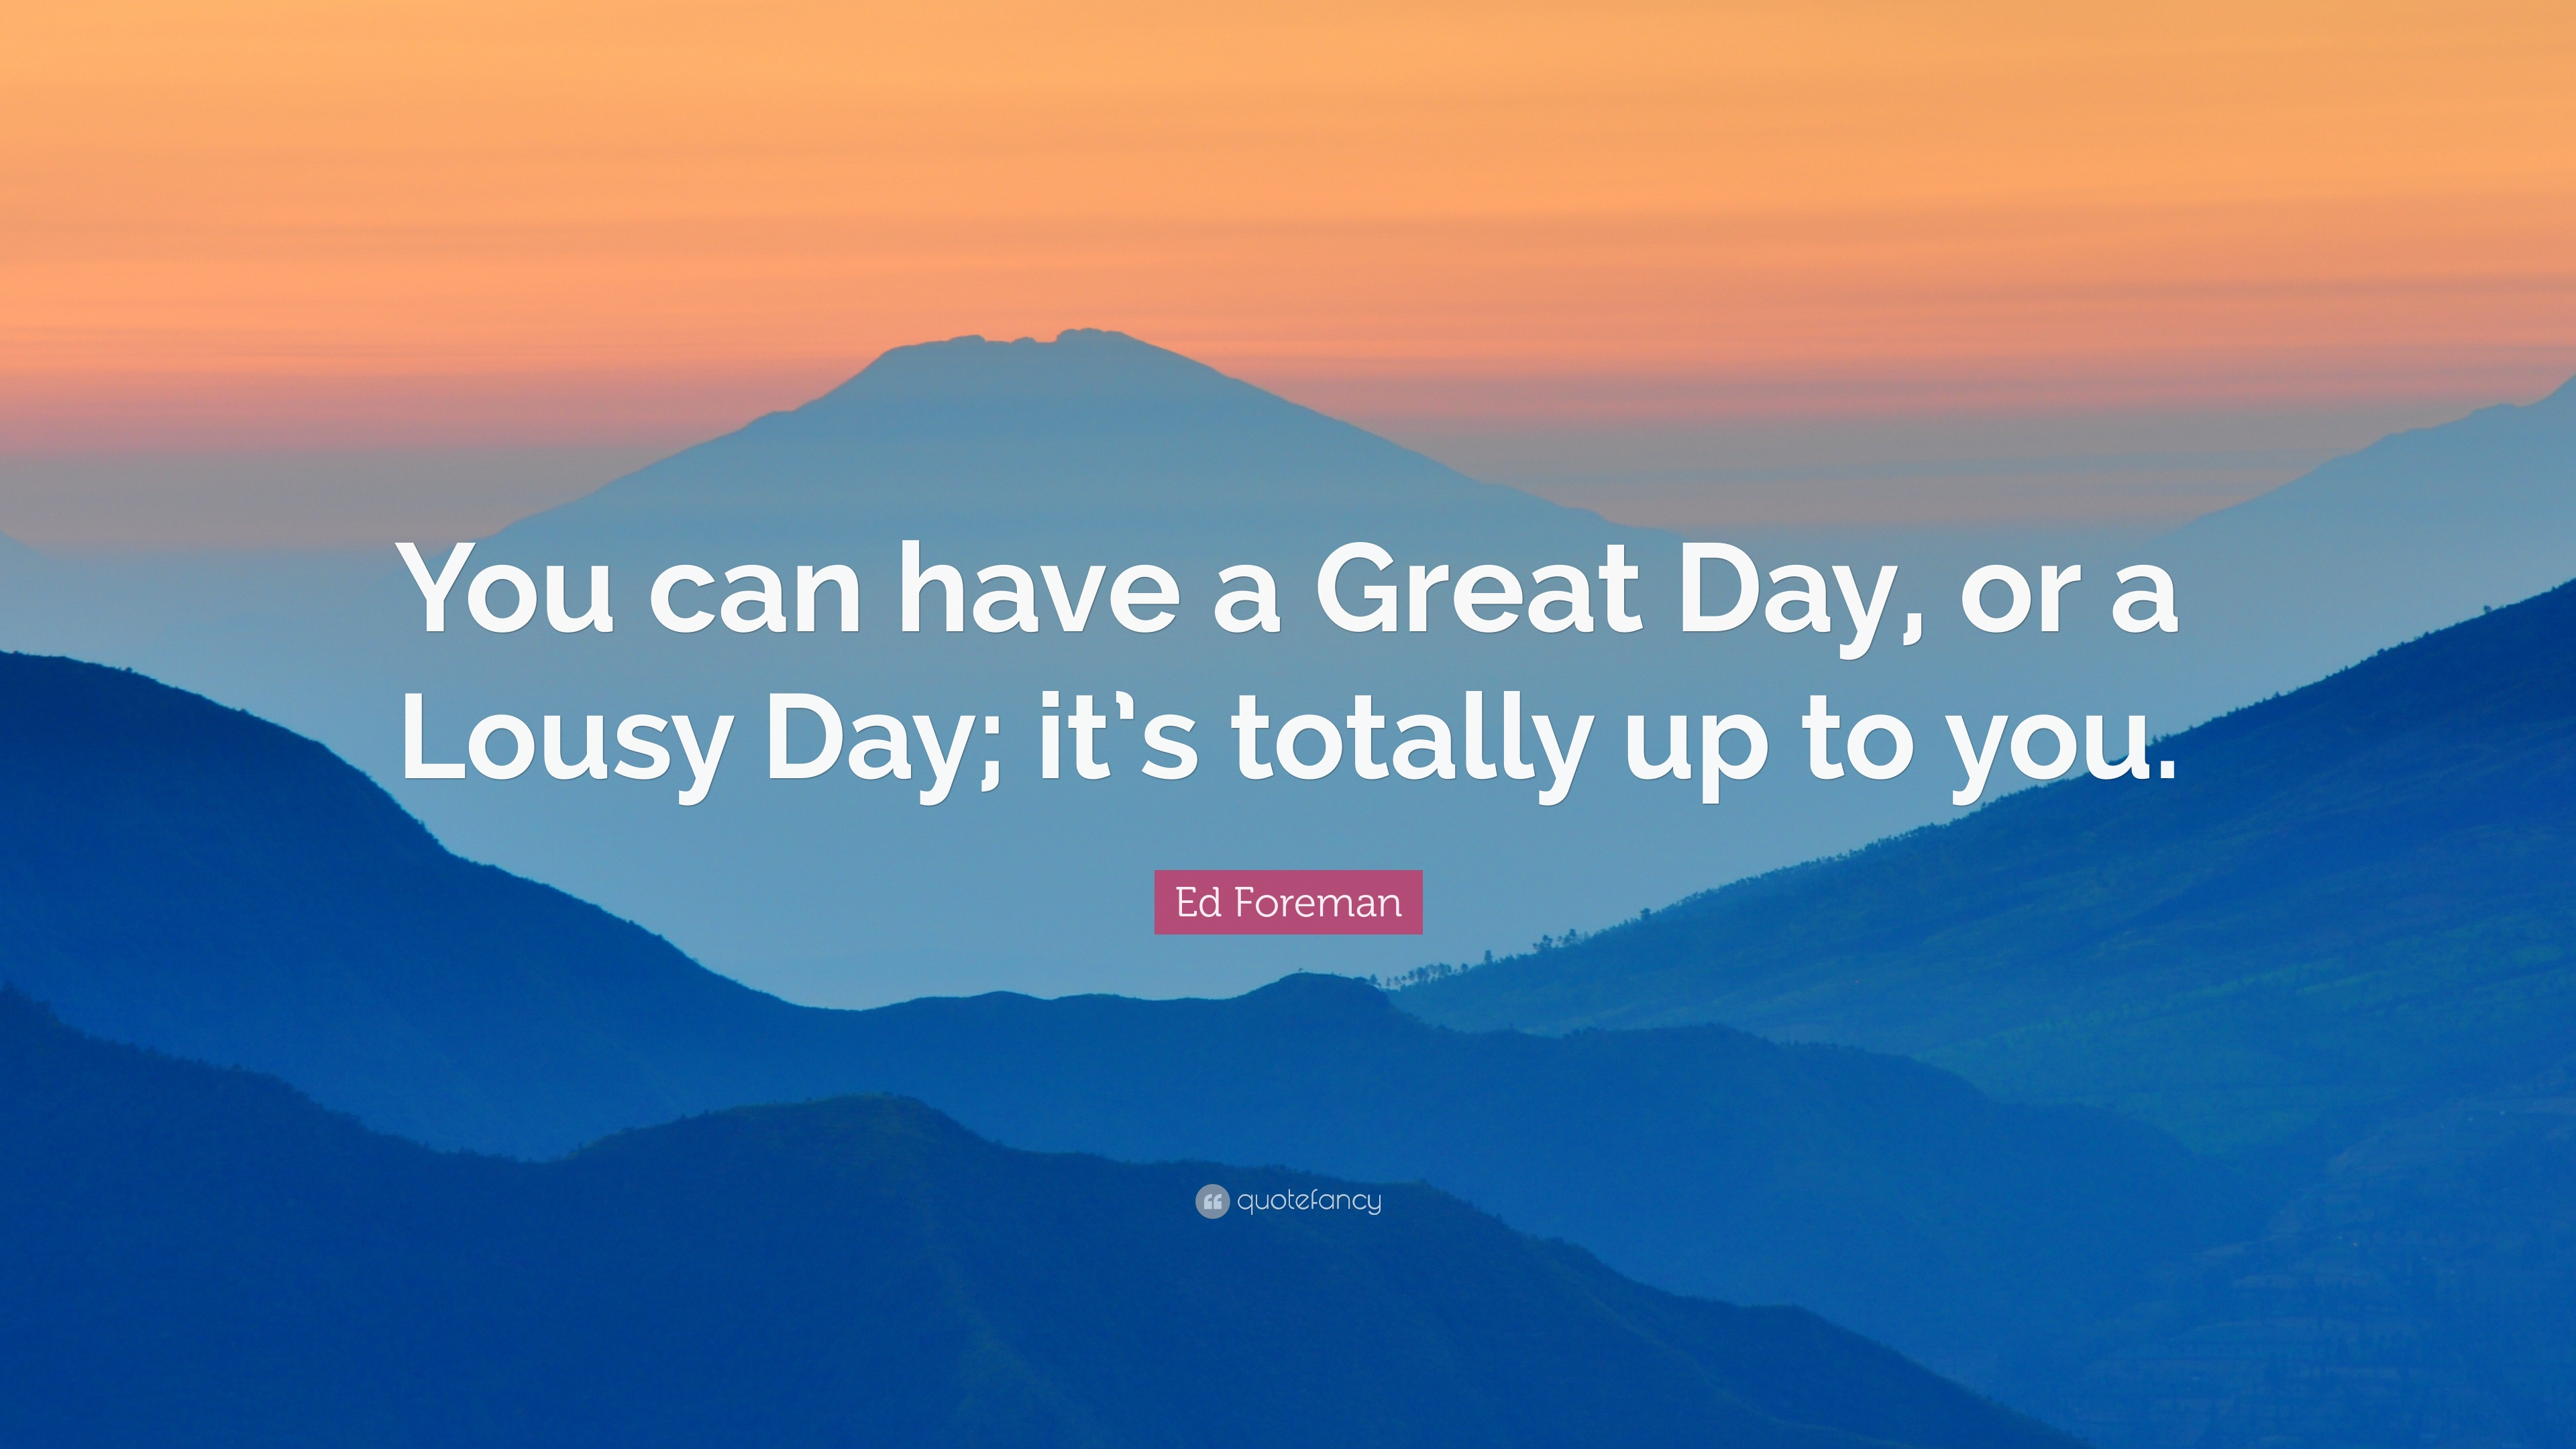 Great Day Quotes Ed Foreman Quotes 5 Wallpapers  Quotefancy